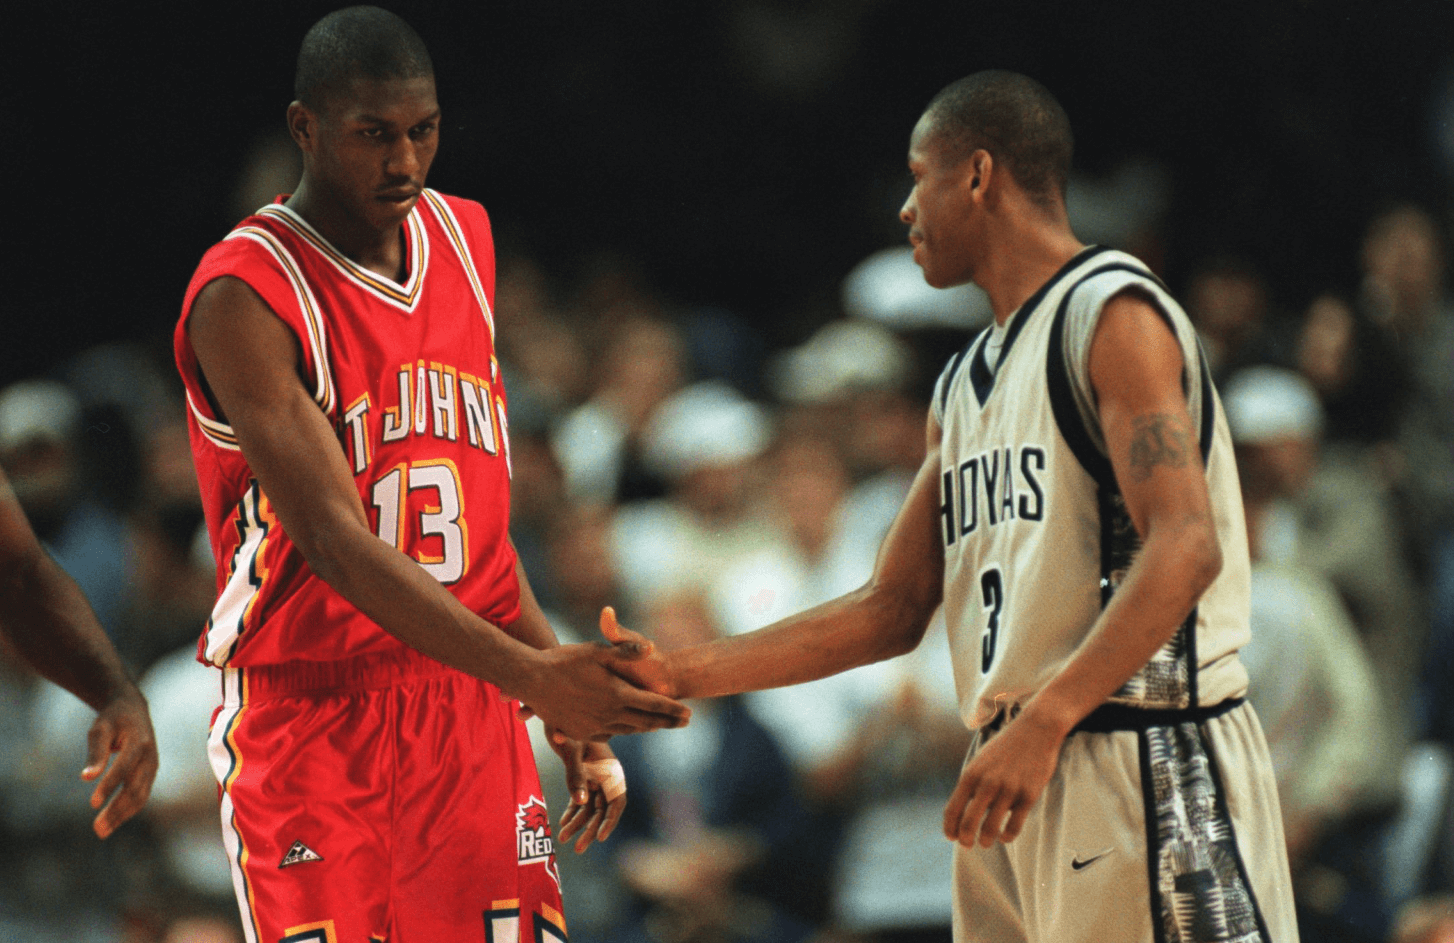 the life and basketball career of felipe lopez The national basketball association (nba)  tito horford (dominican republic), and felipe lopez (former dominican republic national team player).